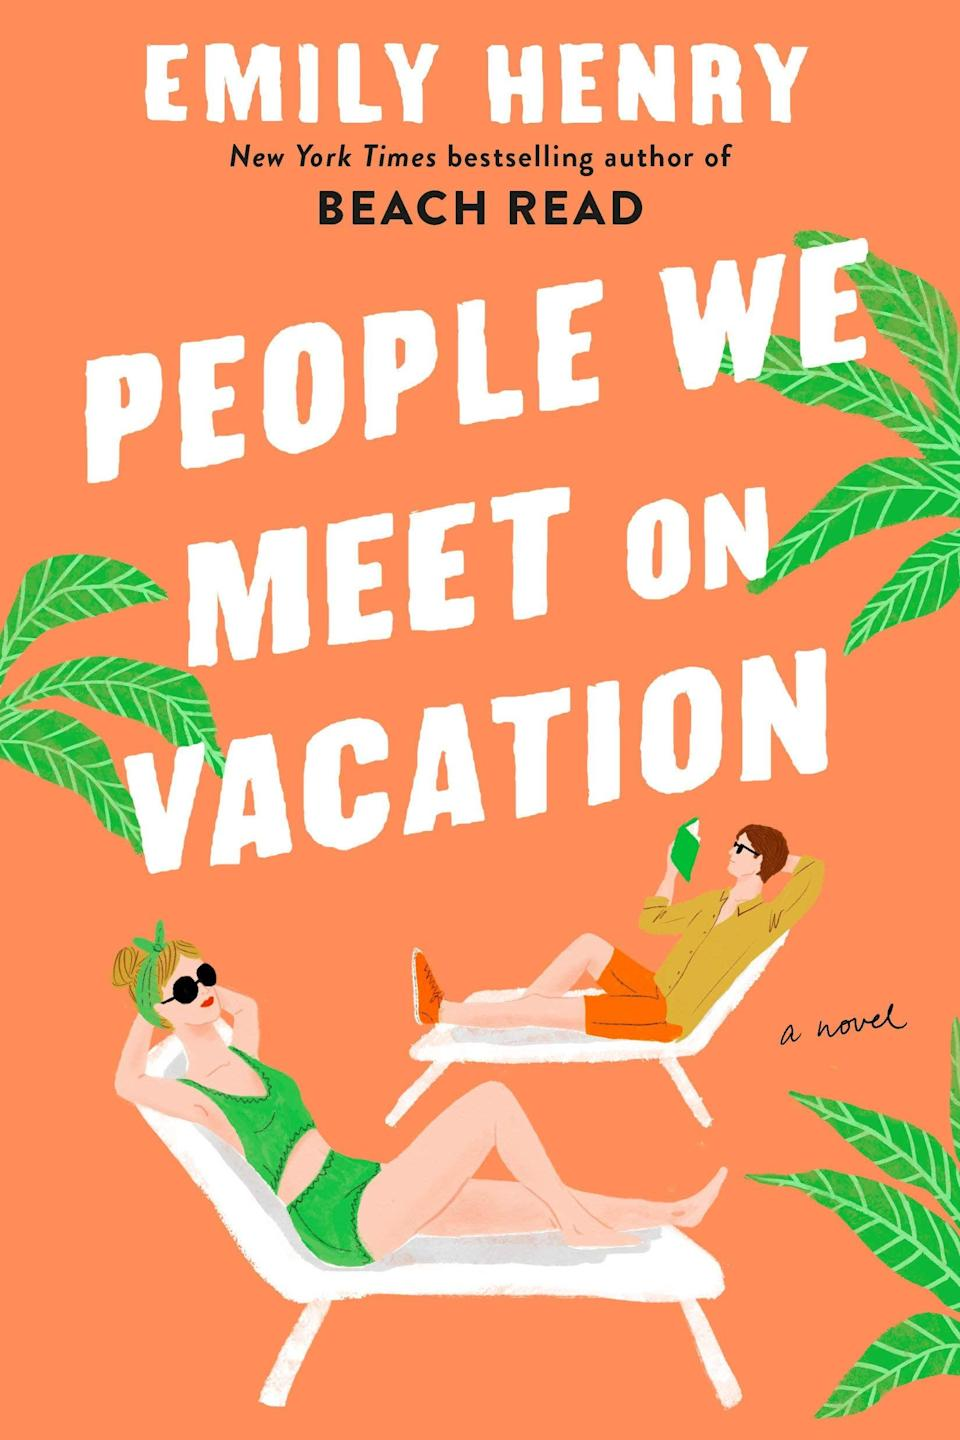 <p><strong>Beach Read</strong> was one of the must-read rom-coms of 2020, and now Emily Henry is on track the claim the title again with her 2021 romance, <span><strong>People We Meet on Vacation</strong></span>. Best friends Poppy and Alex have nothing in common, yet their bond is unshakable. Well, at least it is until a disastrous vacation effectively ends their friendship, but Poppy has a plan: she and Alex are going to take one more trip for old time's sake and finally address the truth about their relationship once and for all. </p> <p><em>Out May 11</em></p>